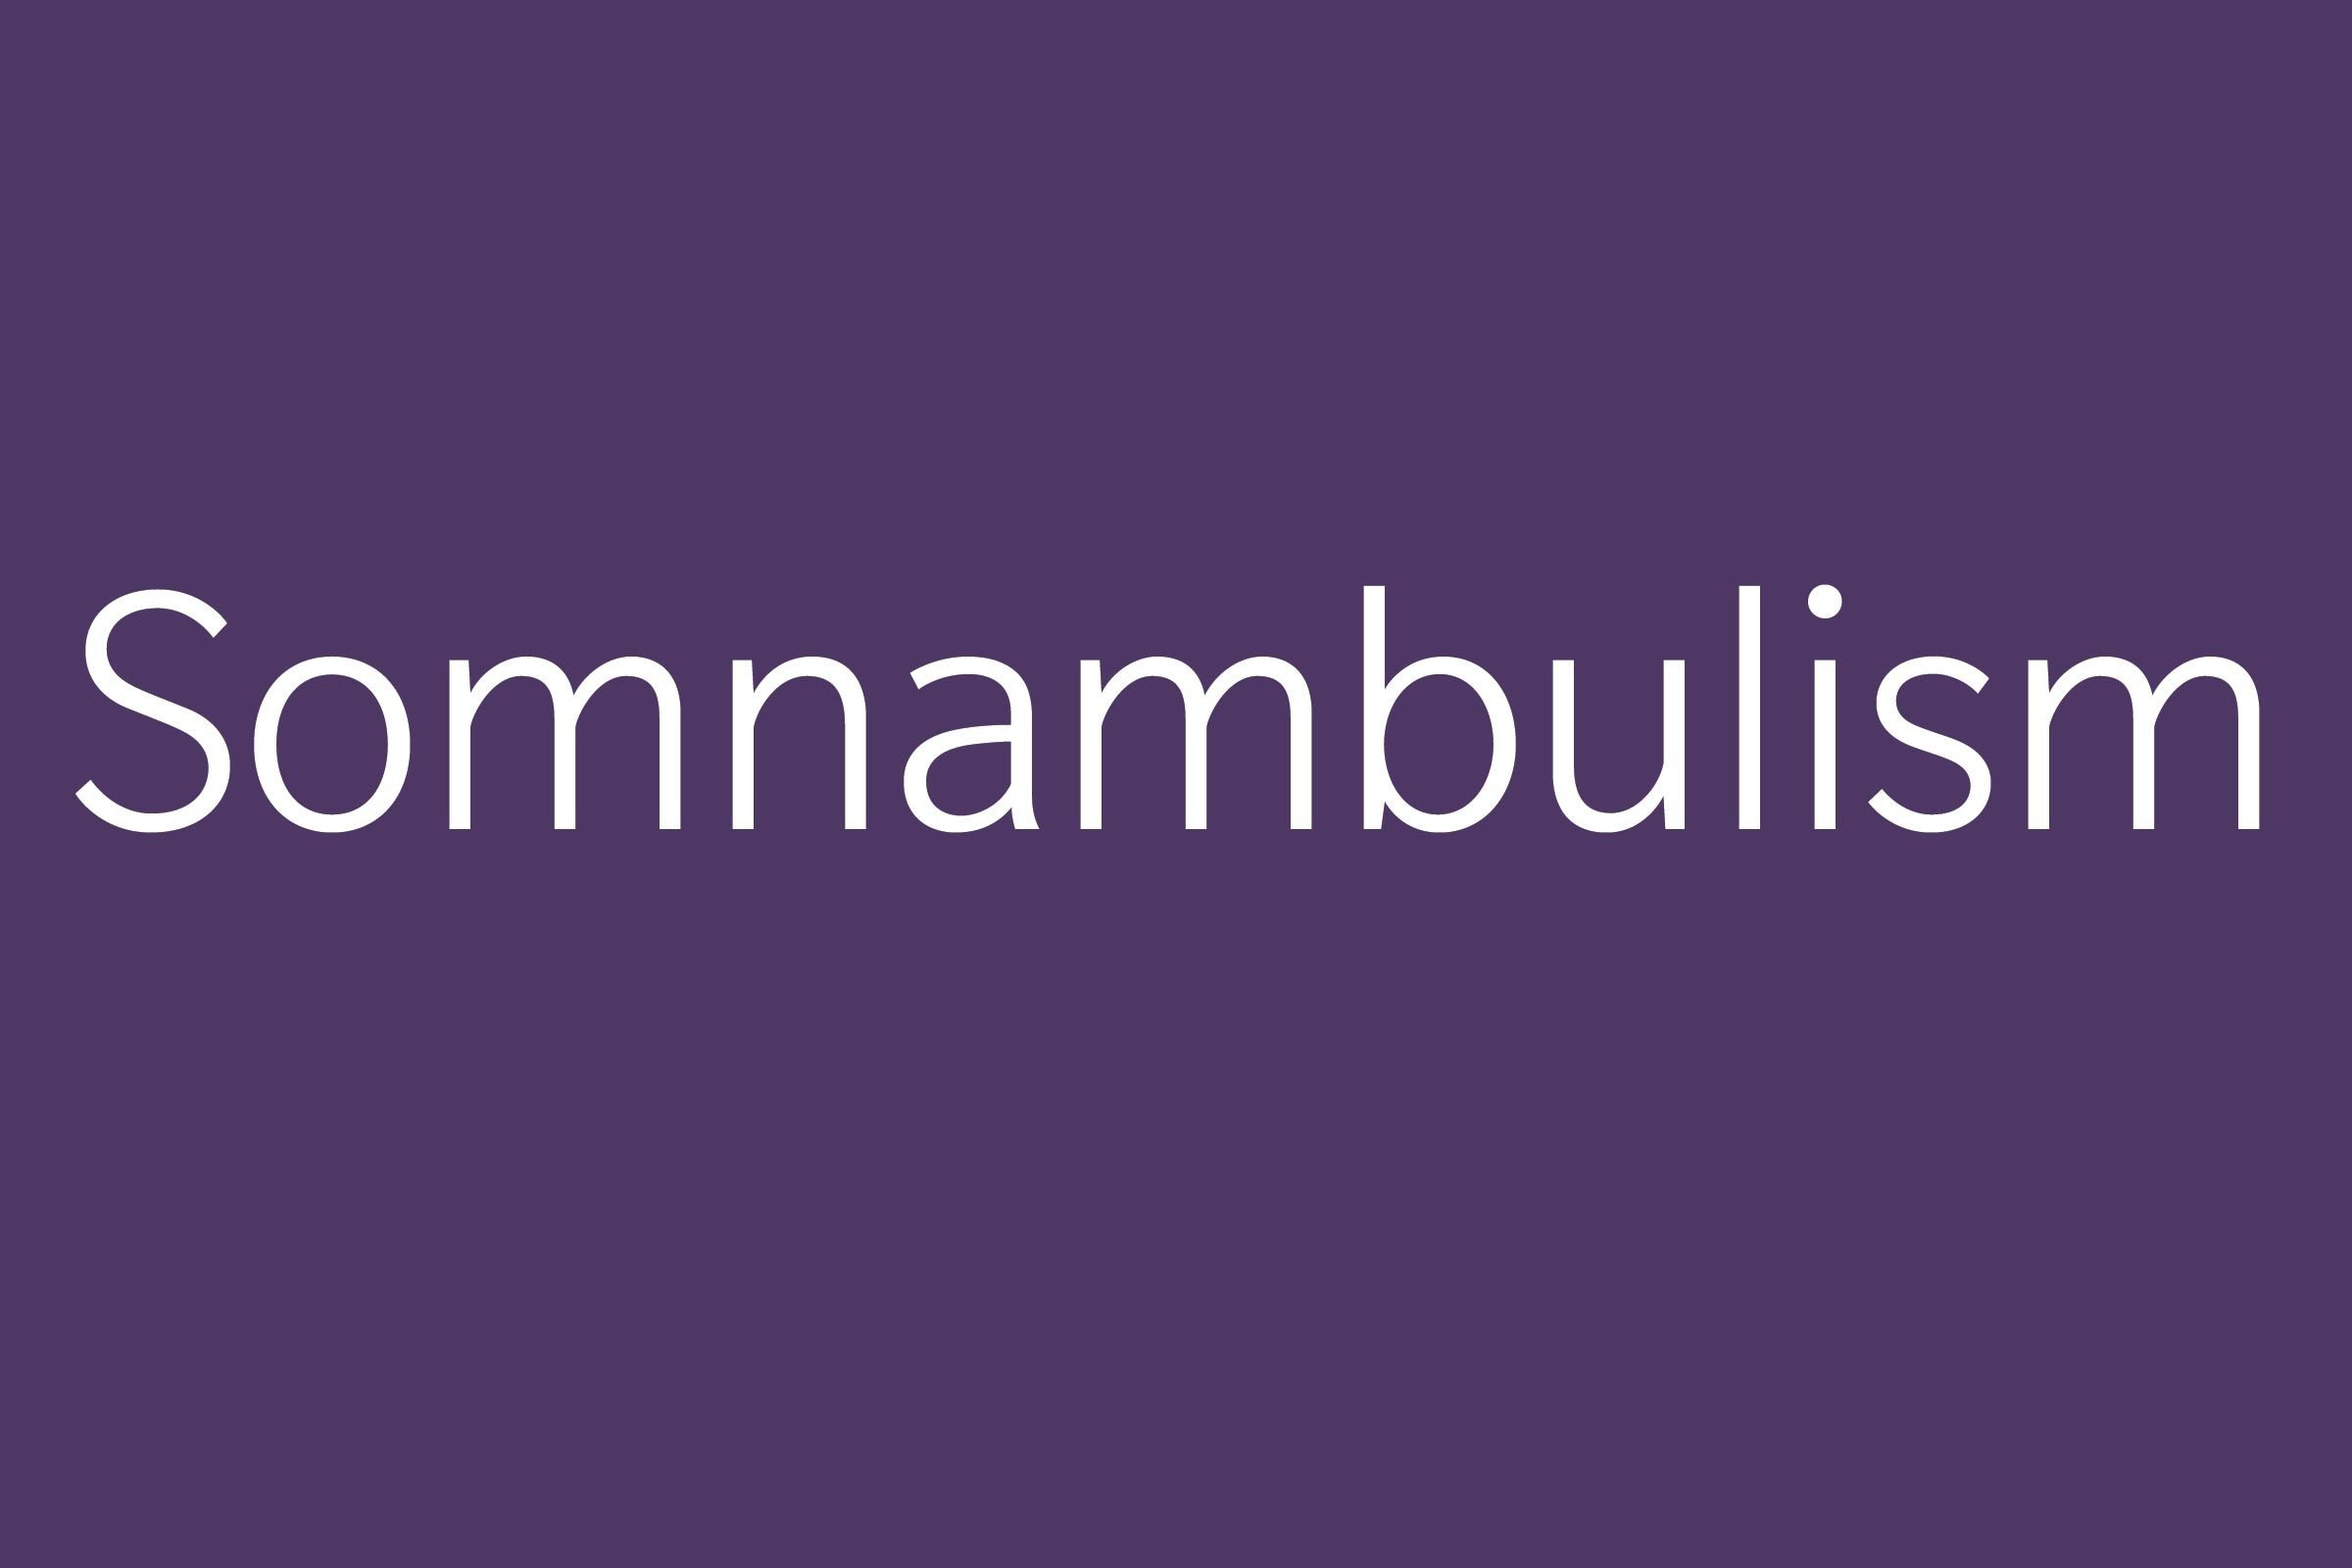 somnambulism funny word funny words to say